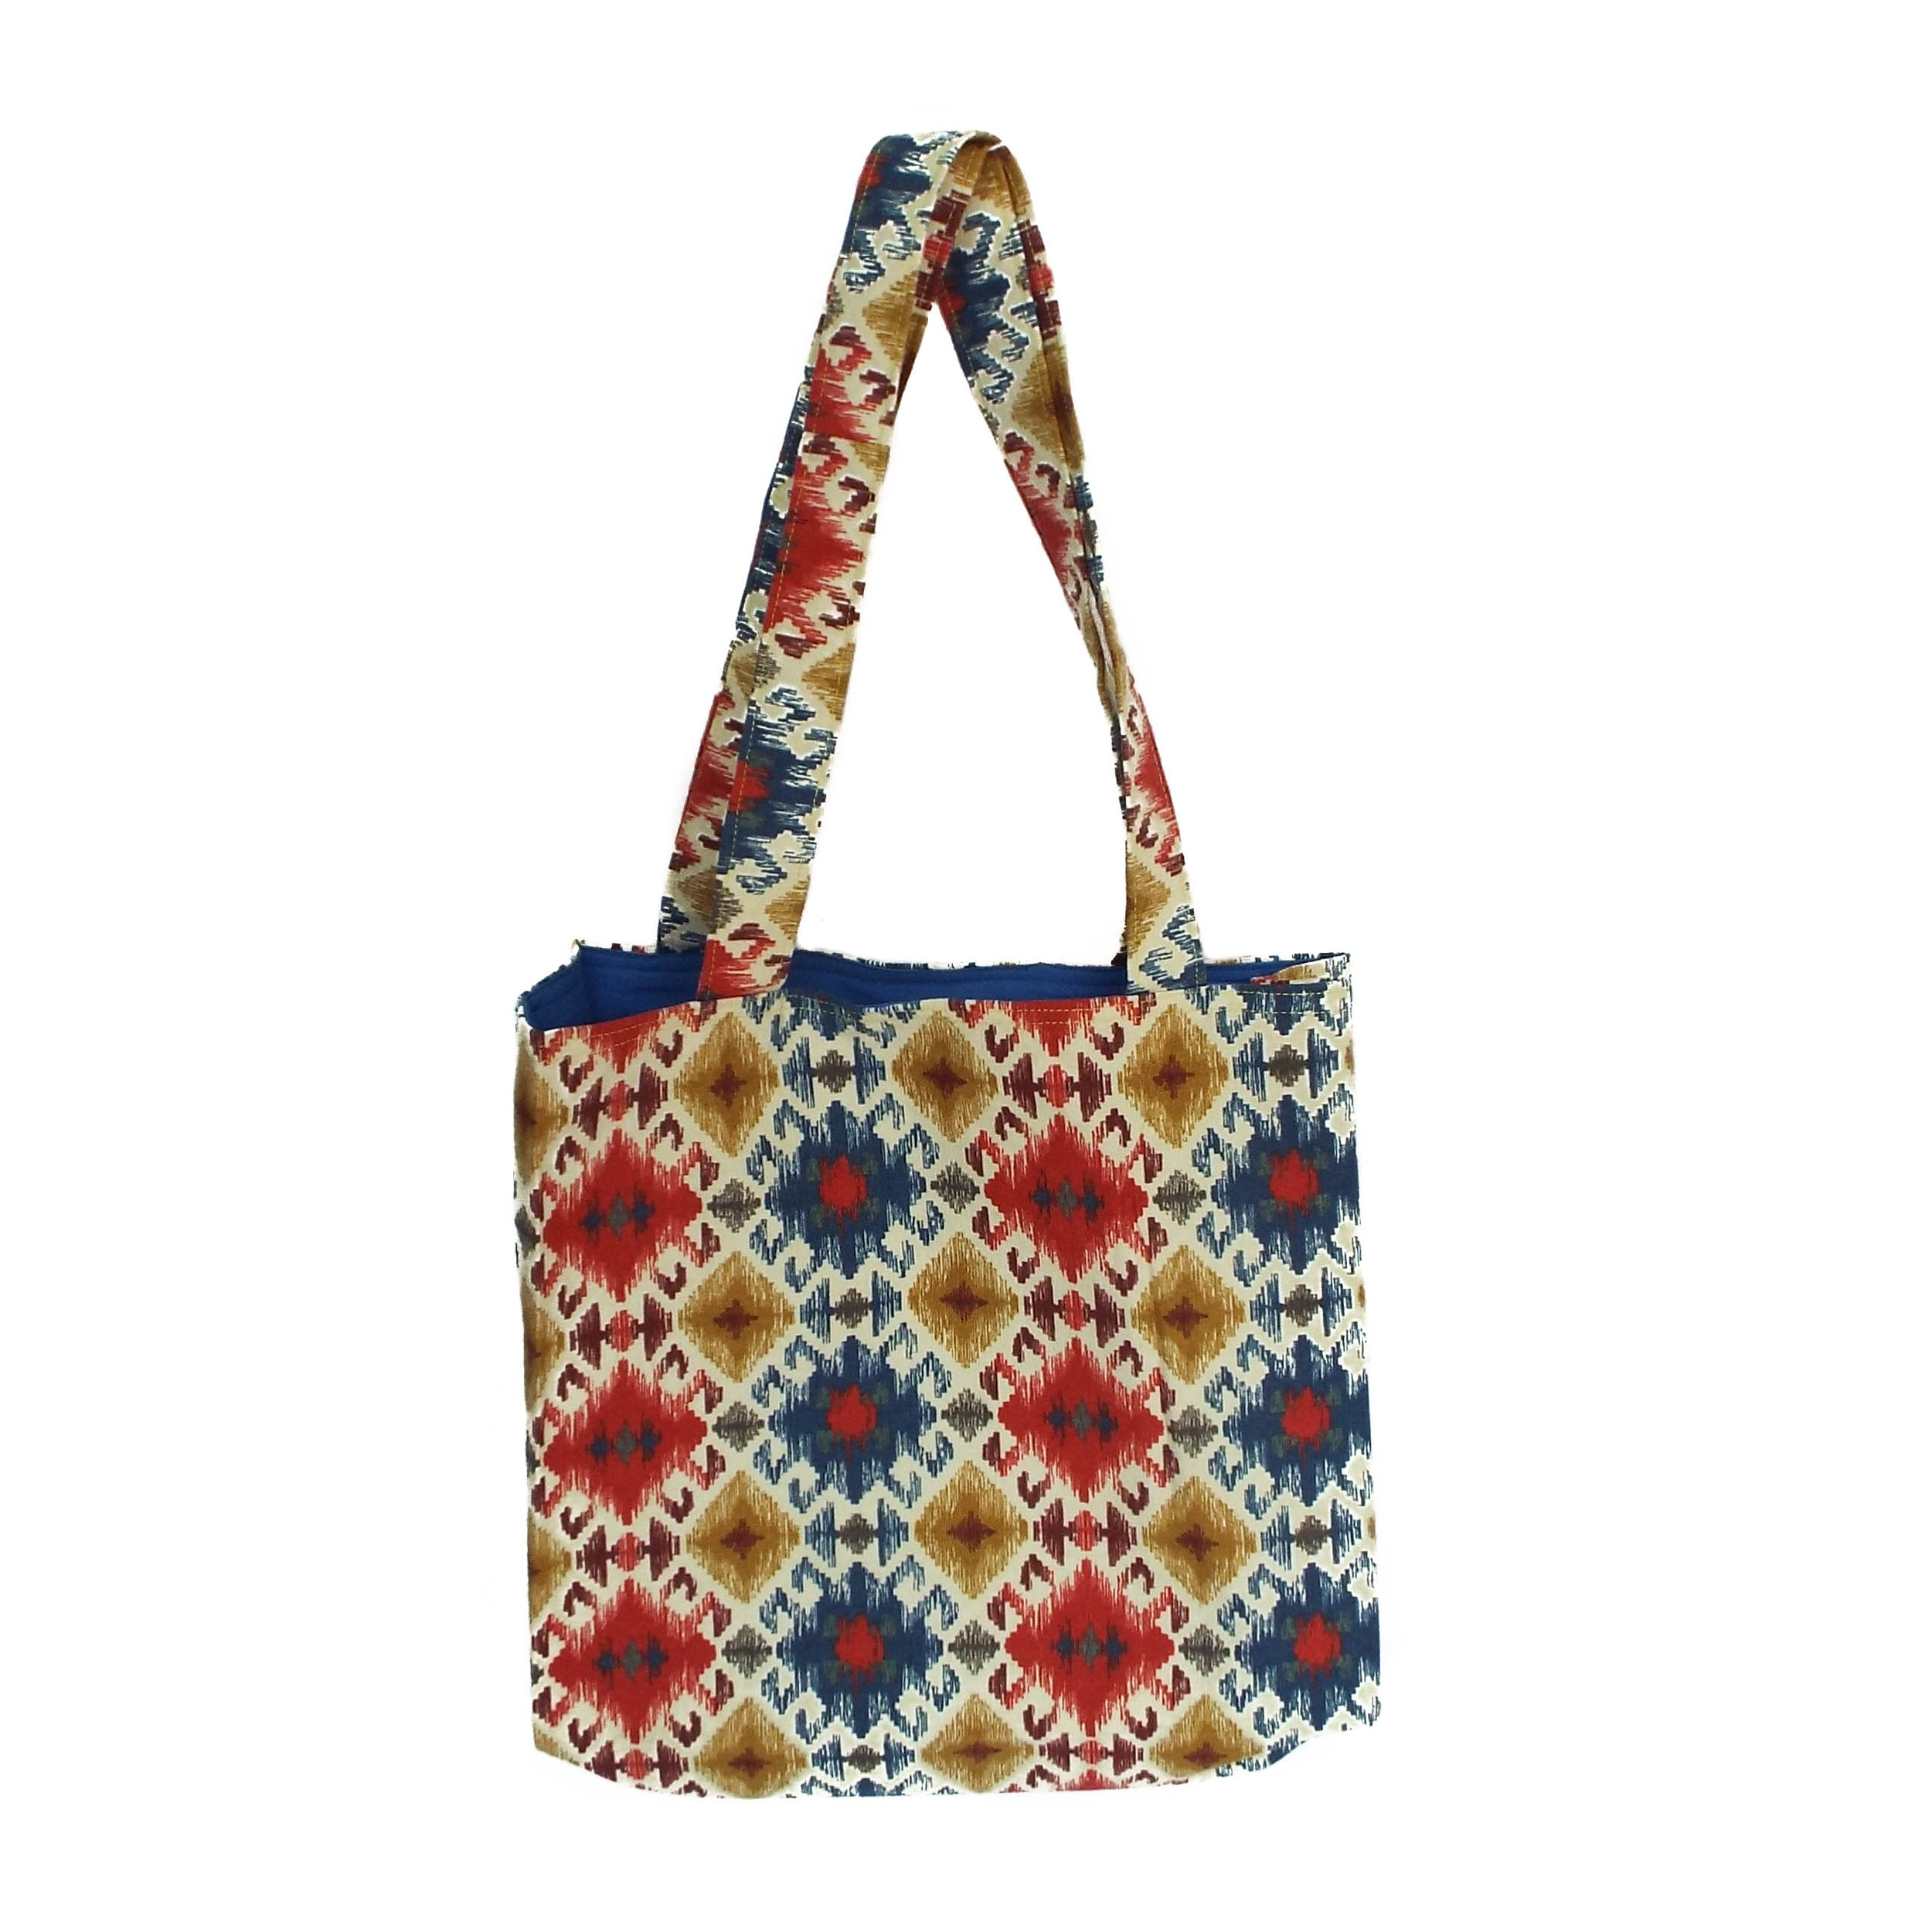 A tote bag made by Khatera. Tote bags can be purchased on The Community Cloth's online store  here .